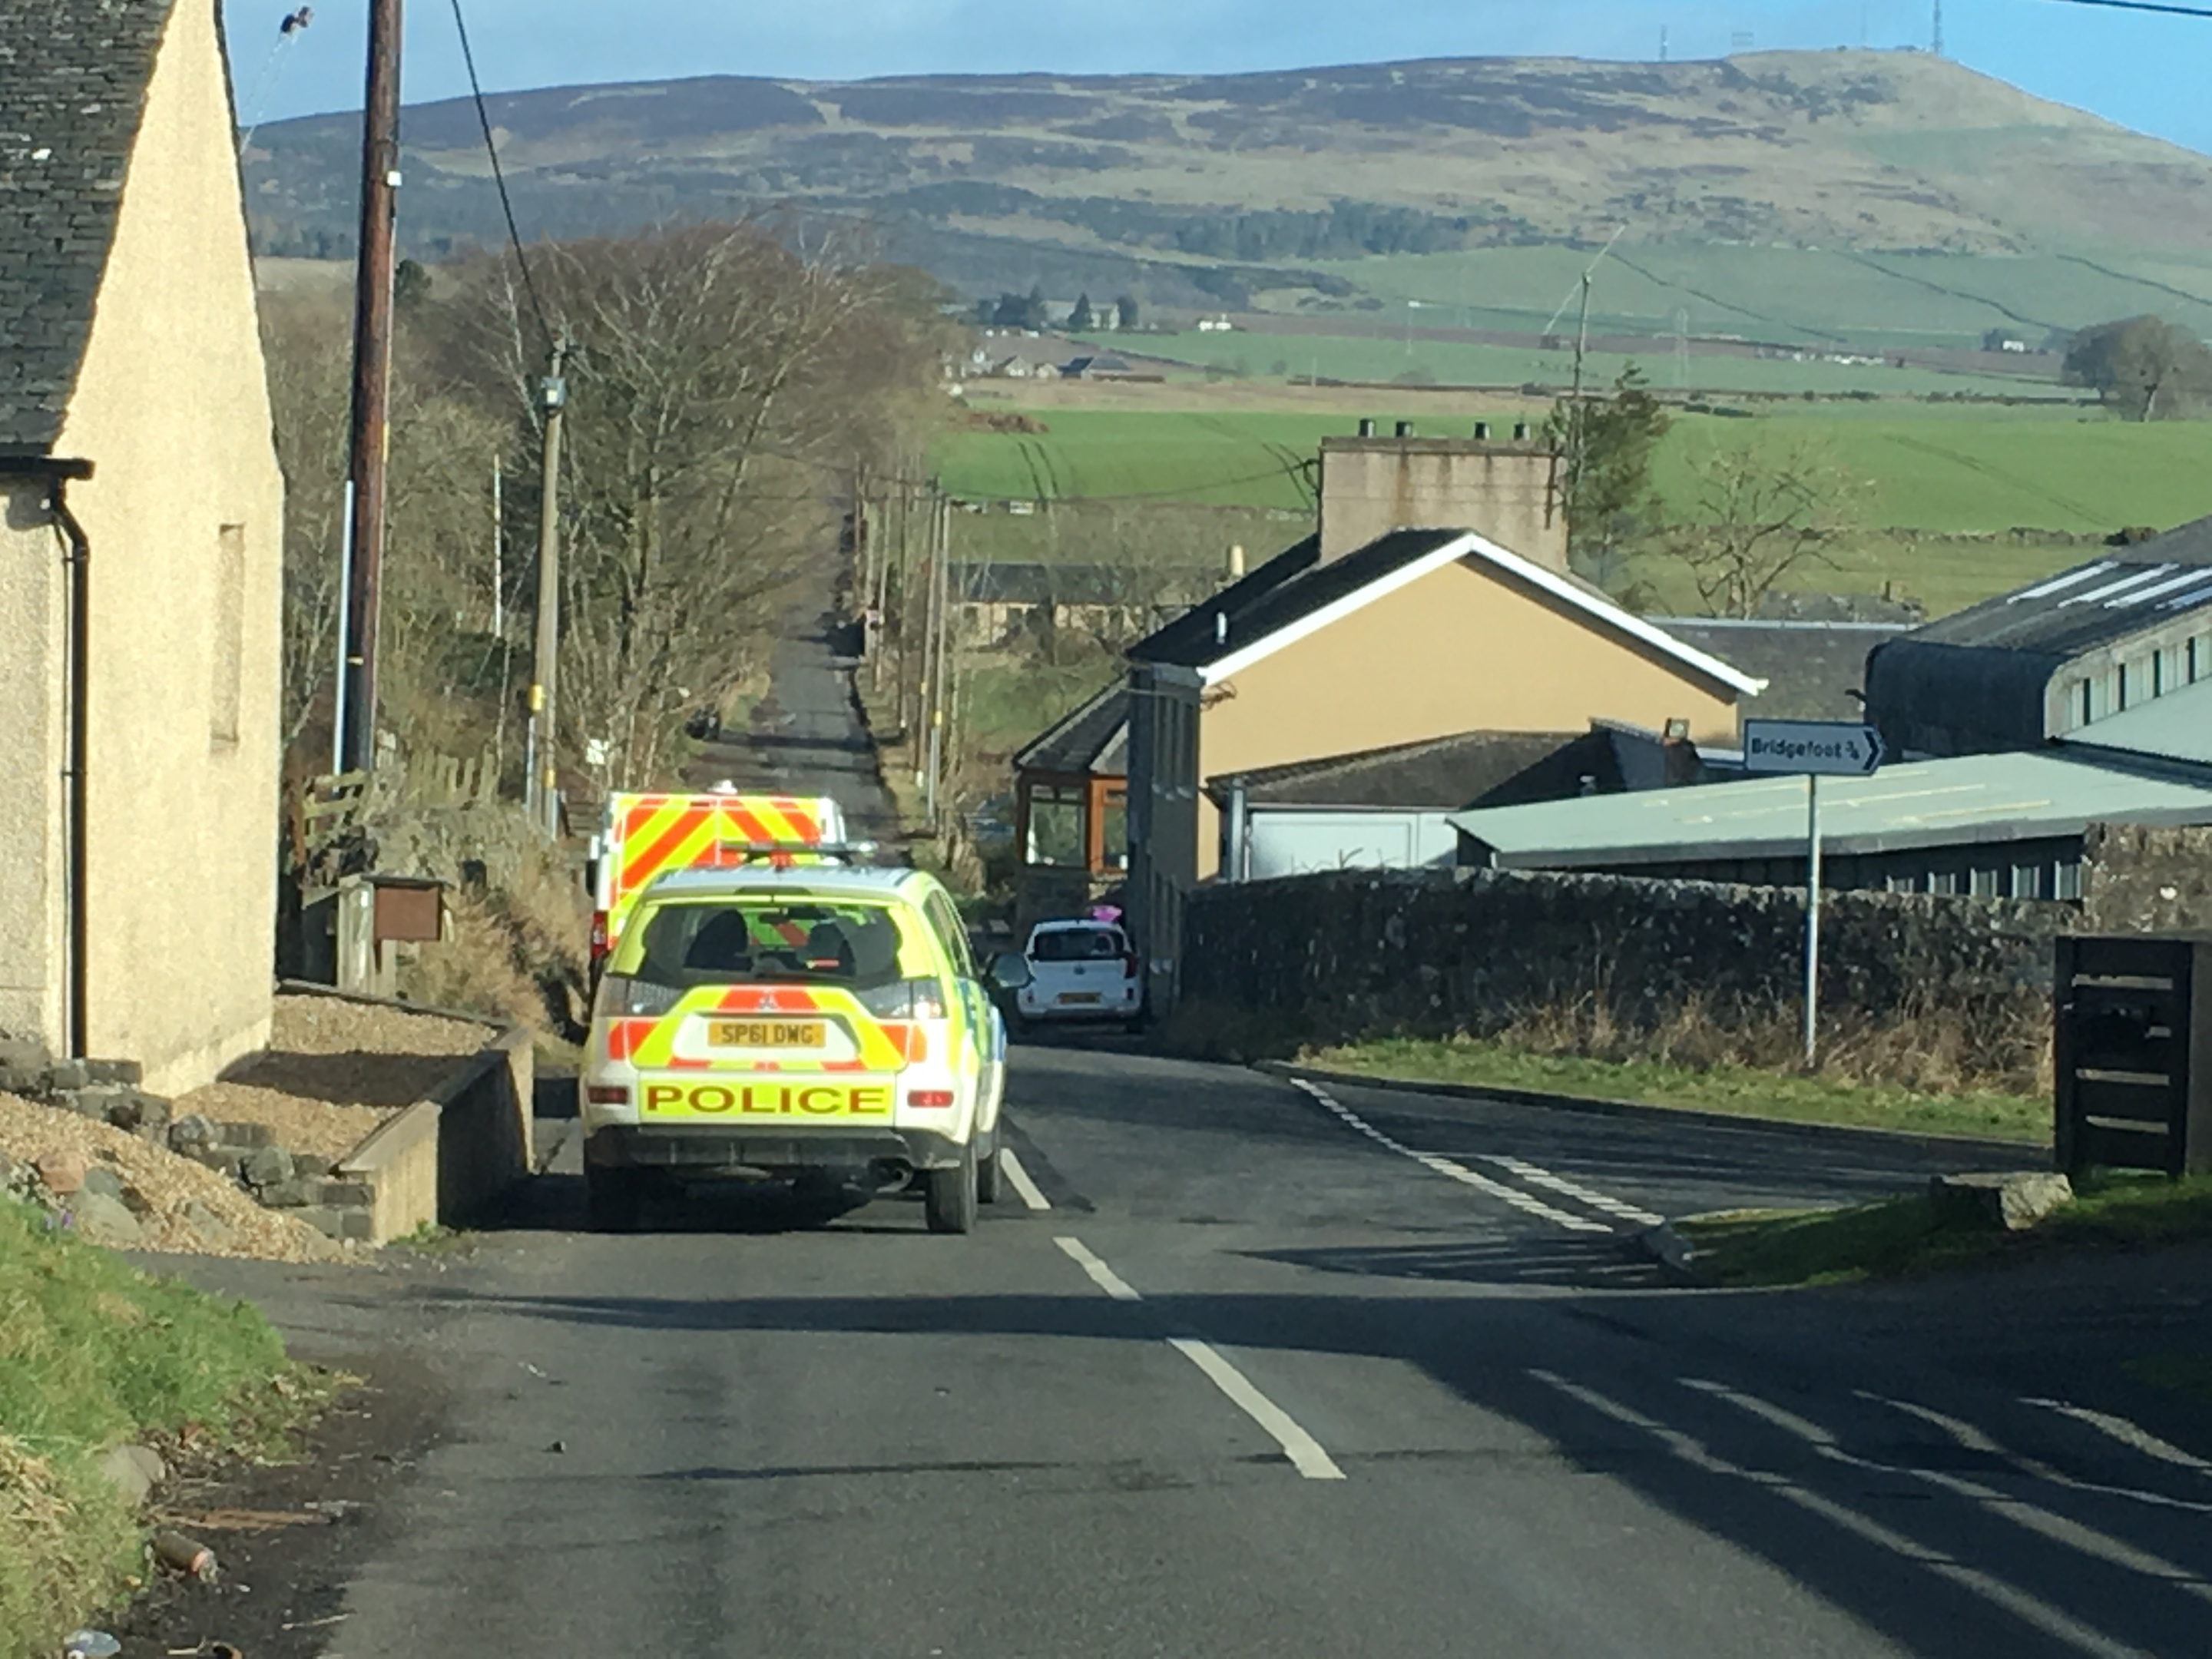 Police were present in Bridgefoot on Tuesday morning.